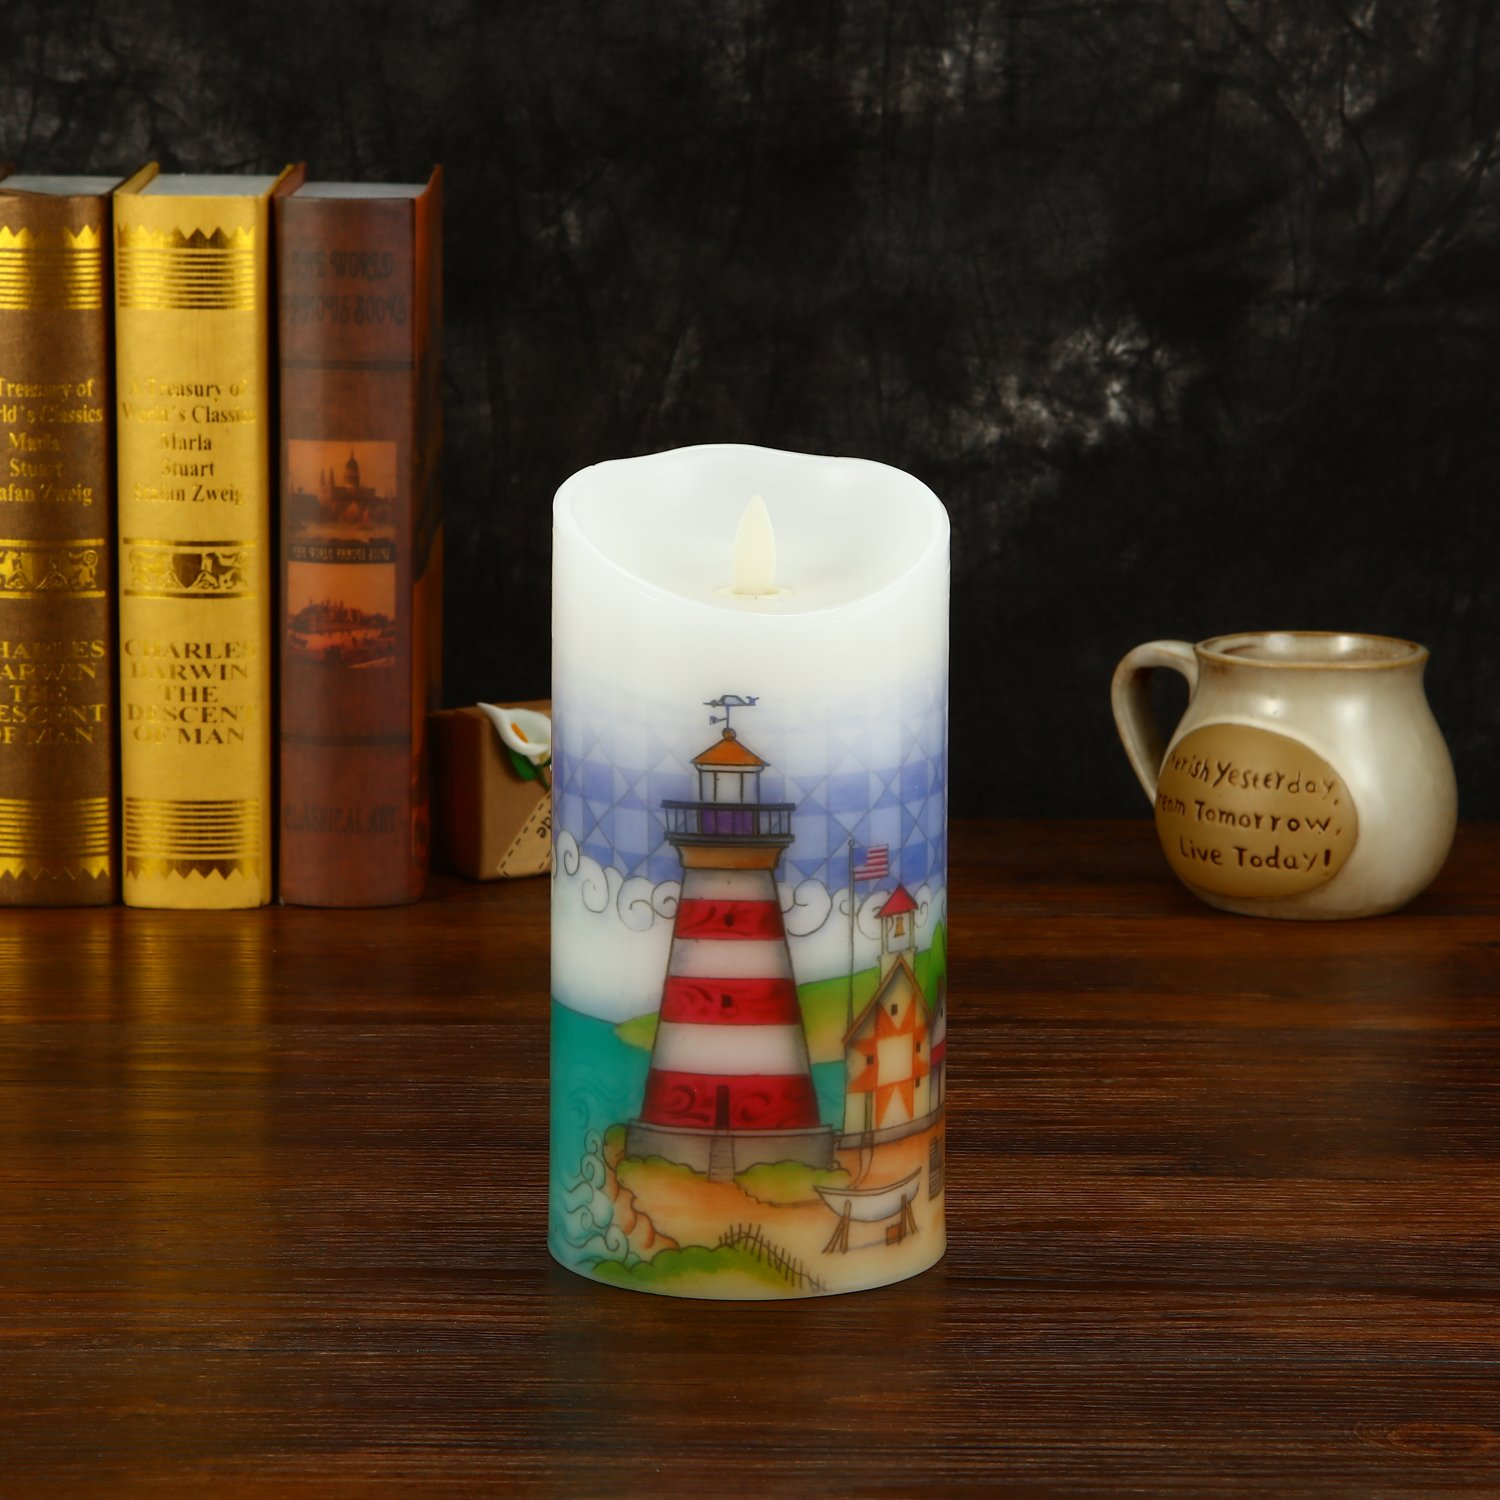 Ksperway Flameless Wax Candles, Moving Wick LED Pillar Candle with Blow ON/Off Control,Timer and Remote 3.5 by 7 Inch Picture (Lighthouse) by Ksperway (Image #6)